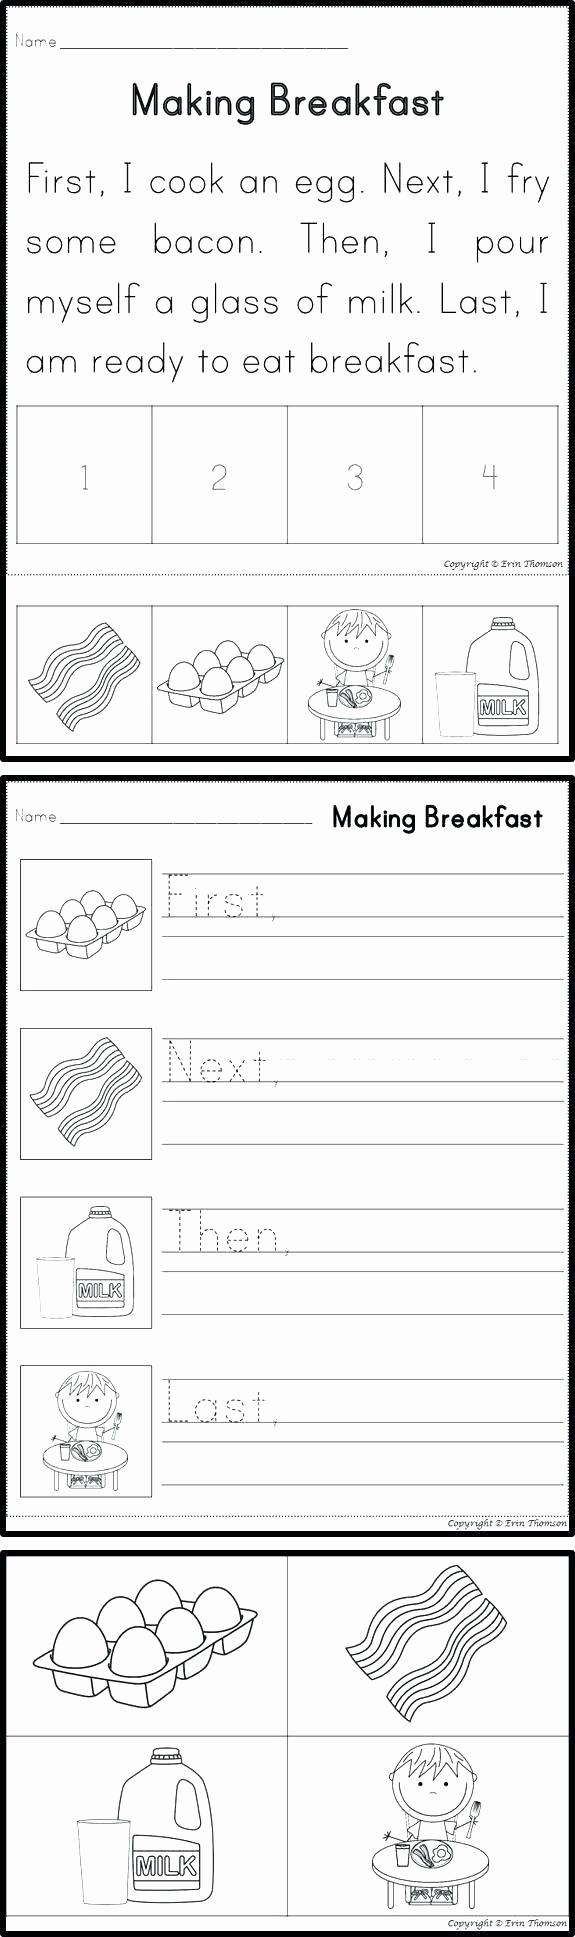 Sequencing Worksheets 4th Grade Best Of 4th Grade Sequencing Worksheets